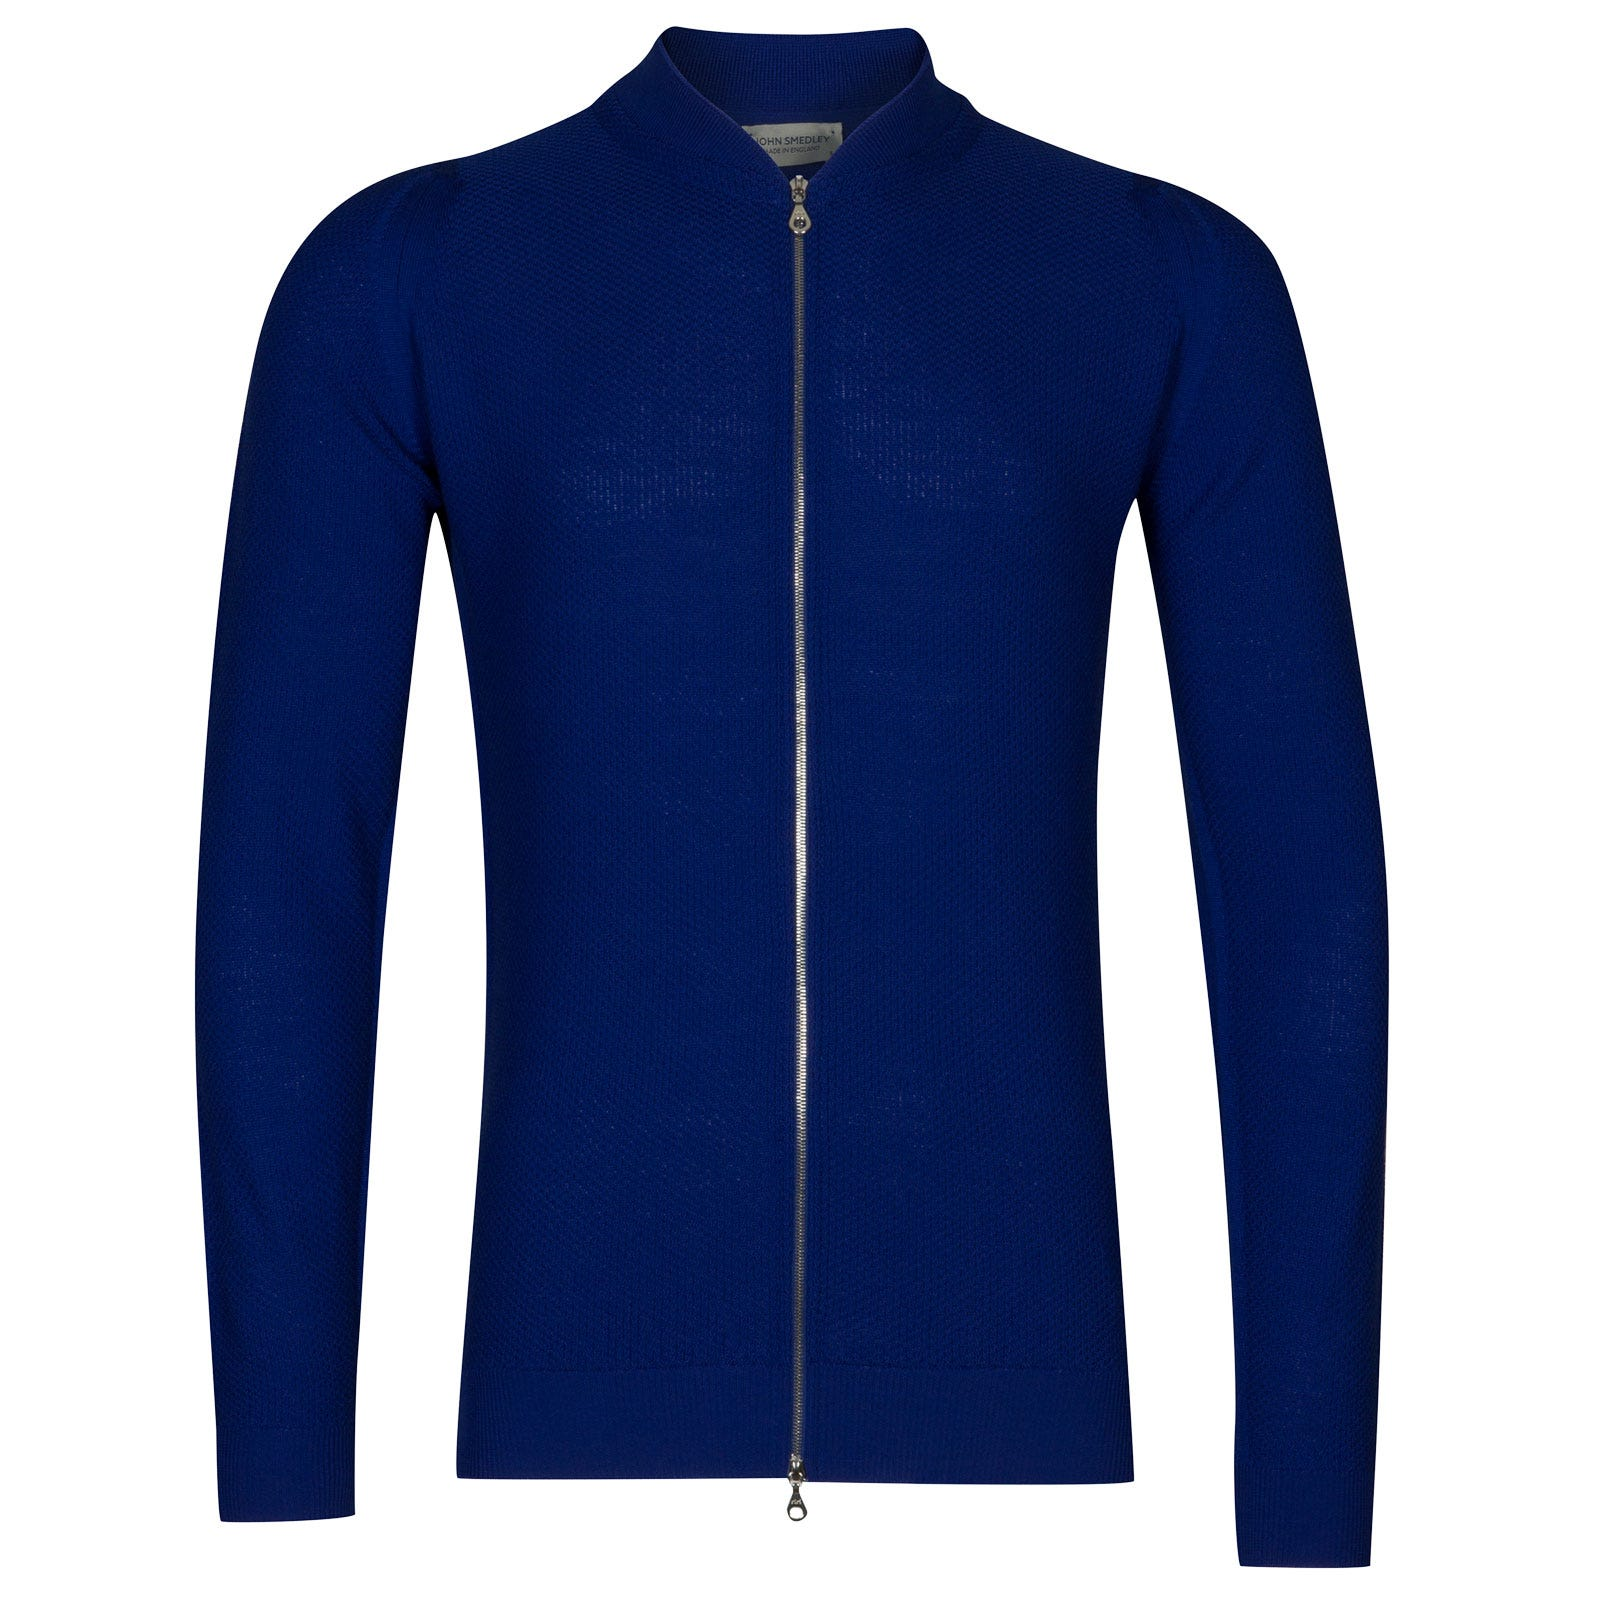 John Smedley 6Singular Merino Wool Jacket in Coniston Blue-XS